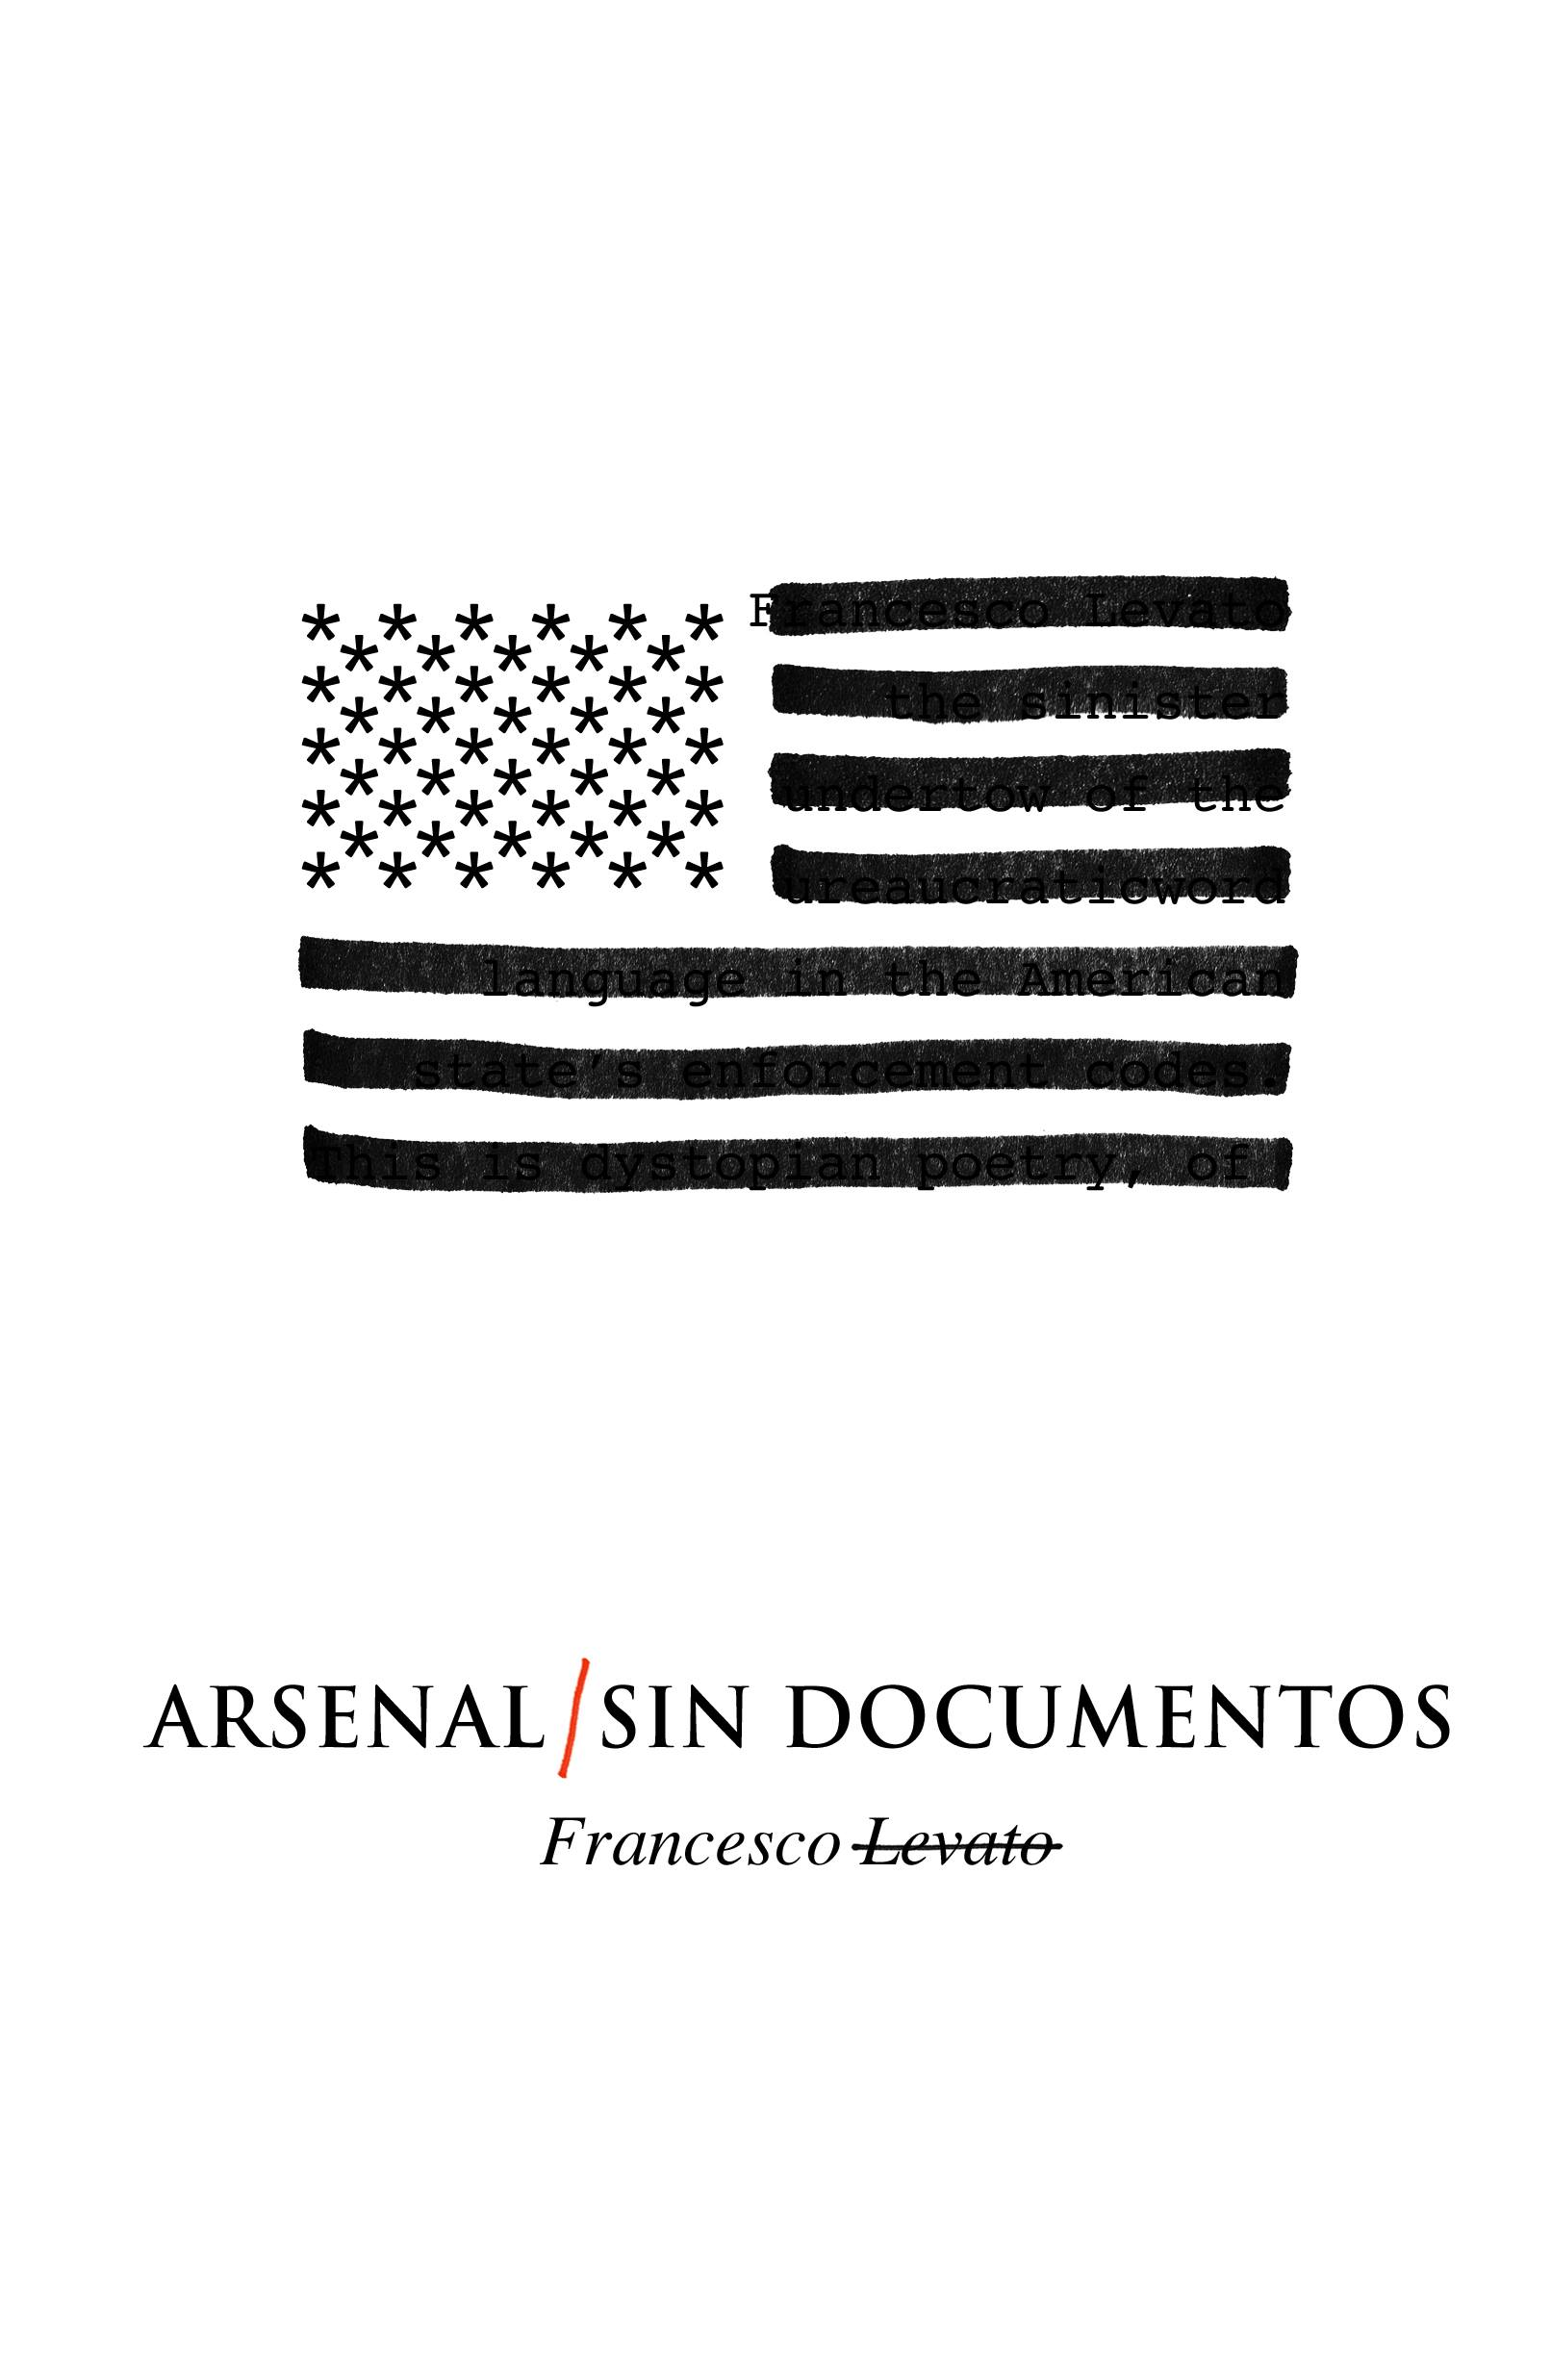 Cover design by Joel Amat Güell